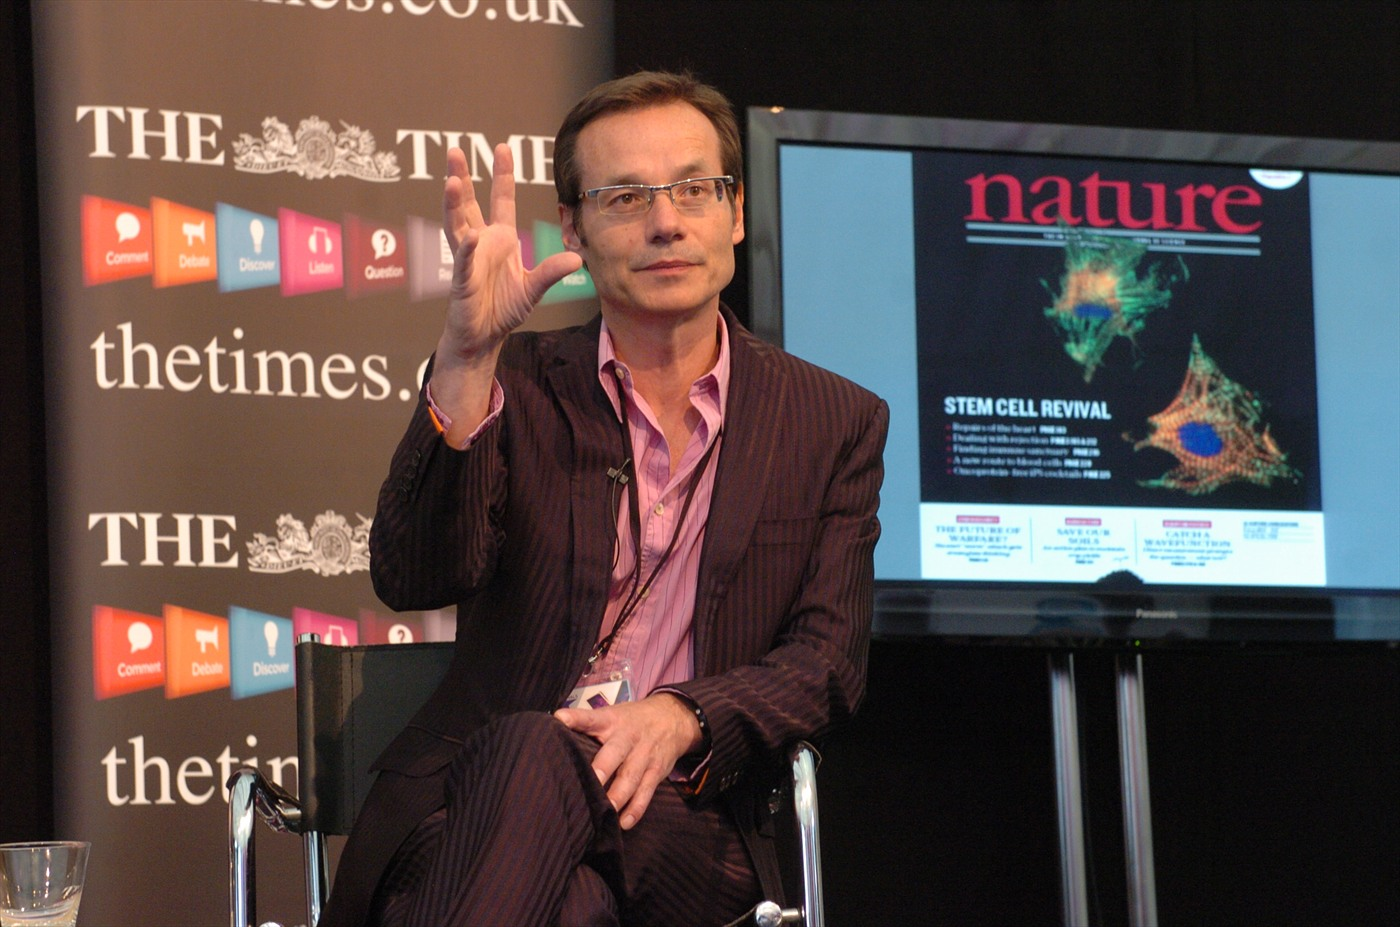 Mark Lythgoe at Cheltenham Science Festival 2017